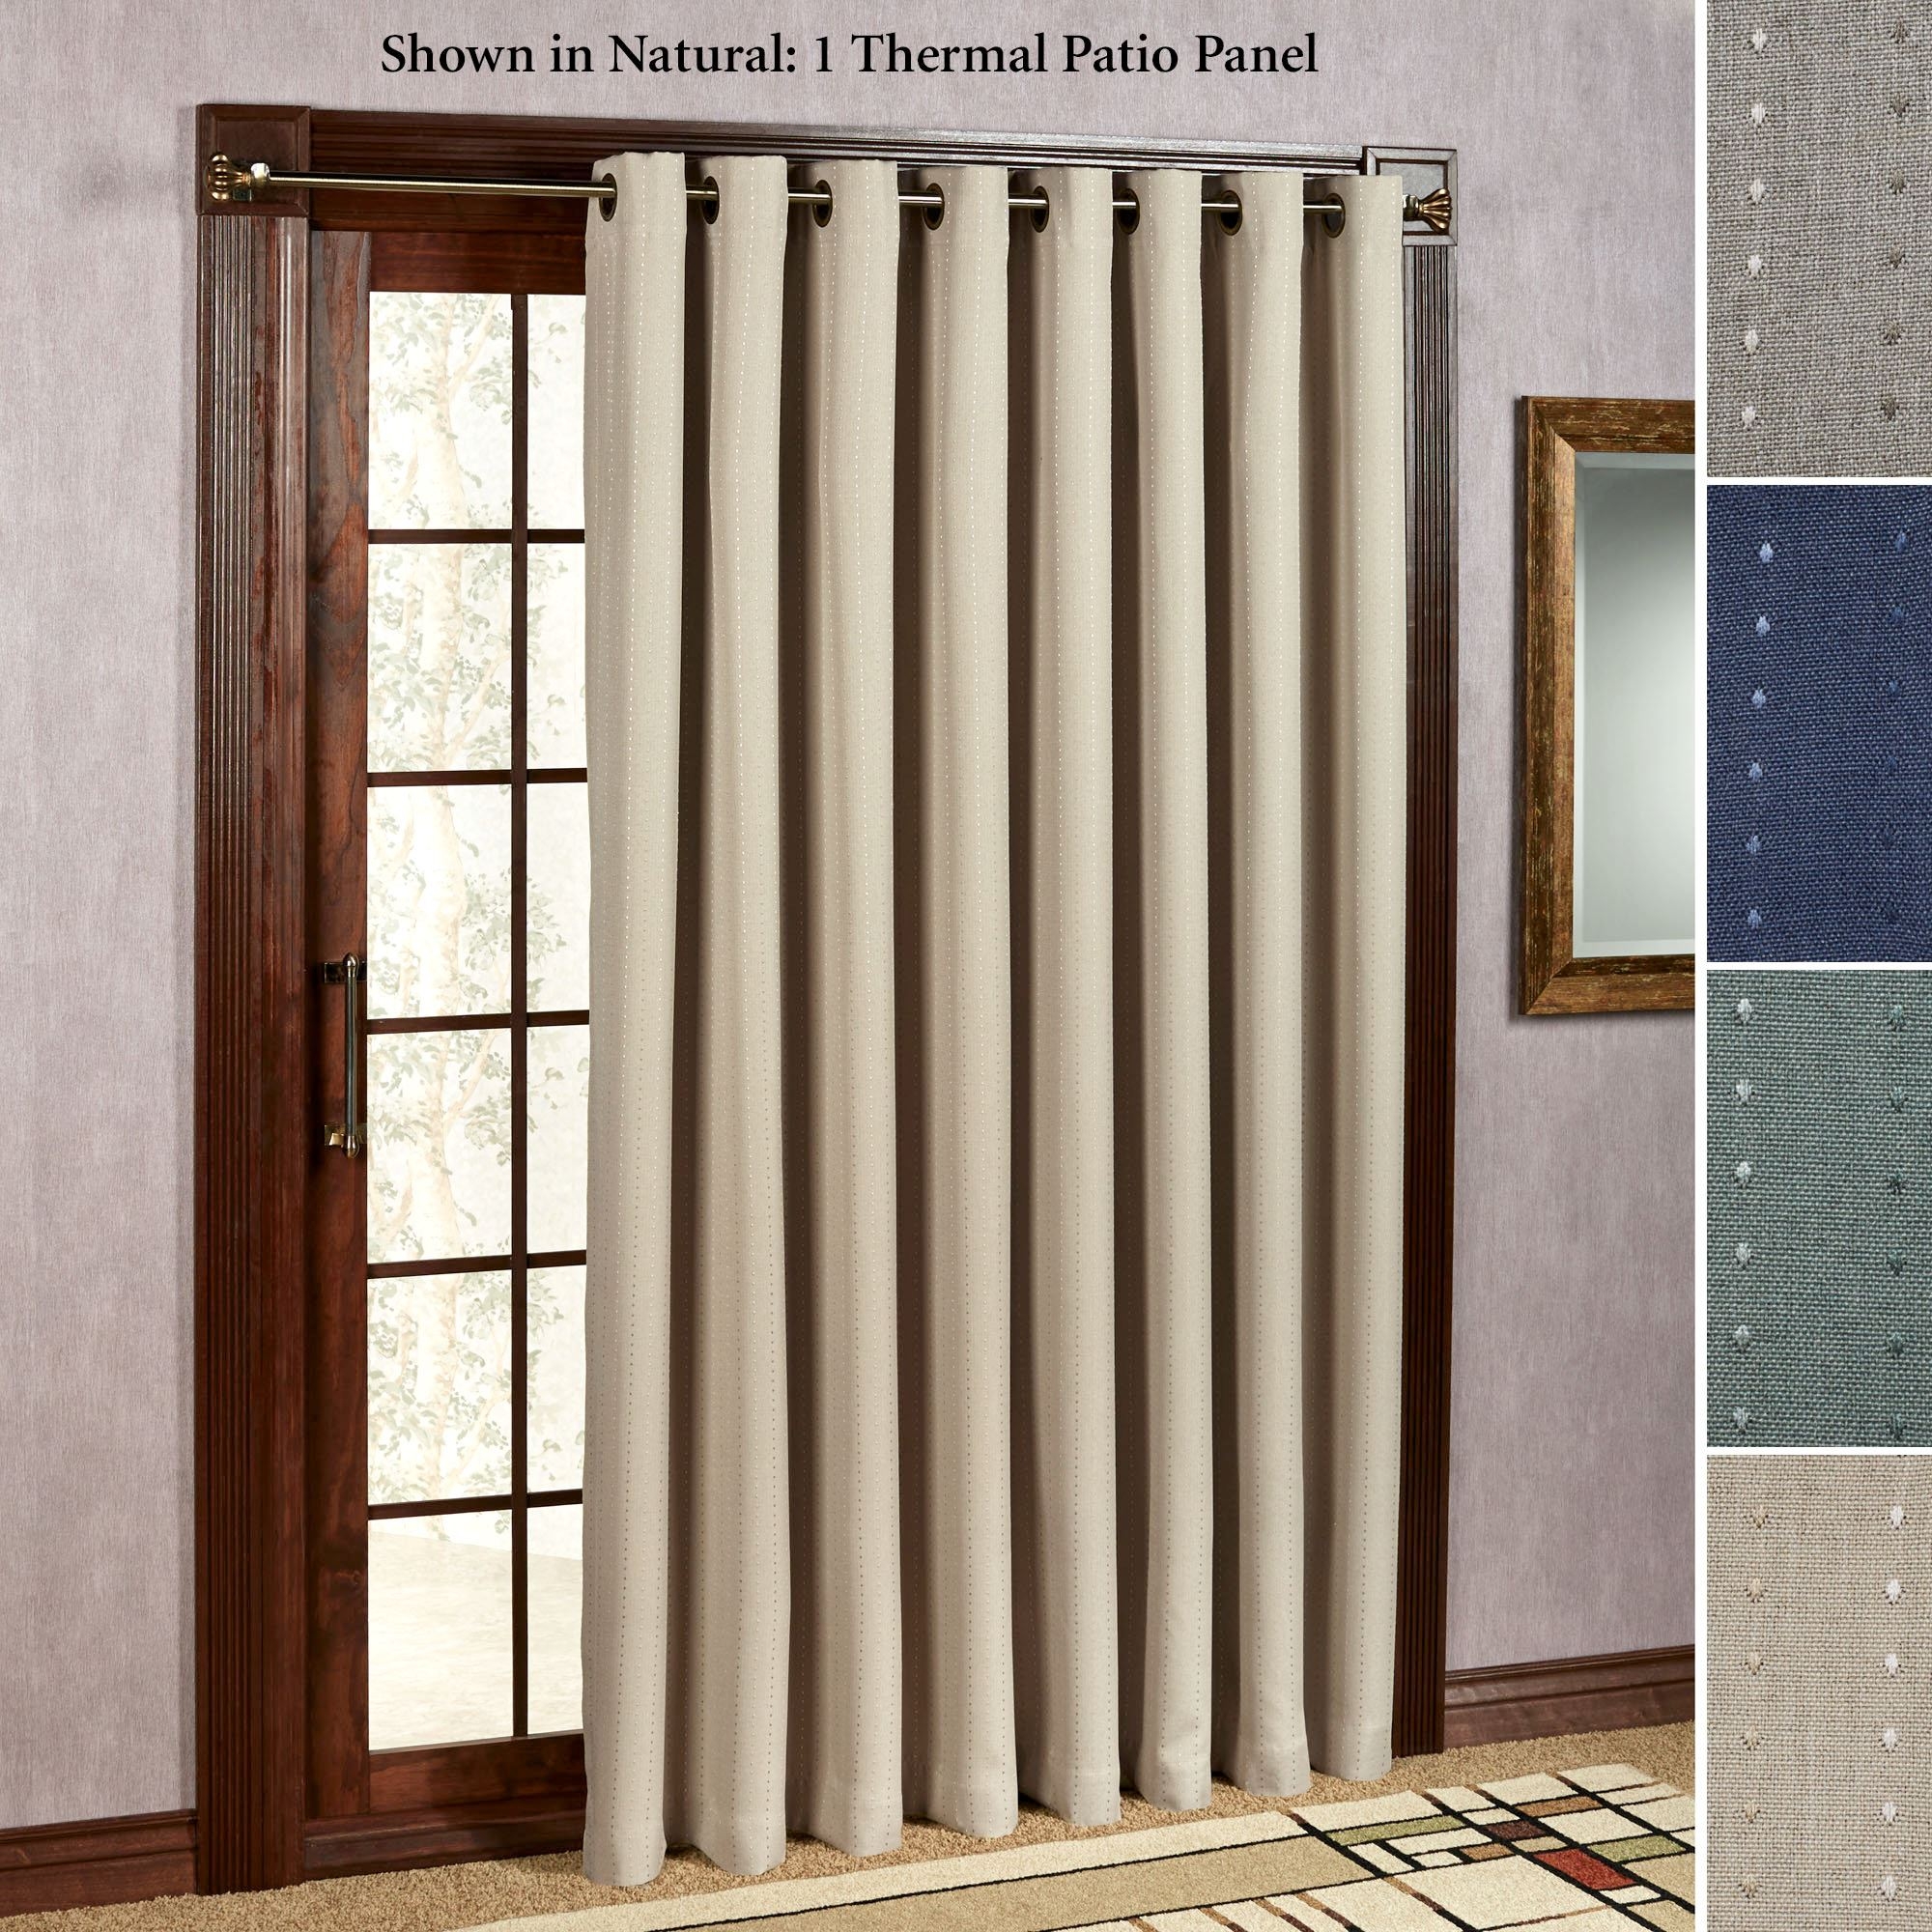 Photos of Grand Pointe Grommet Patio Curtain Panel 110 x 84 curtains for sliding glass door